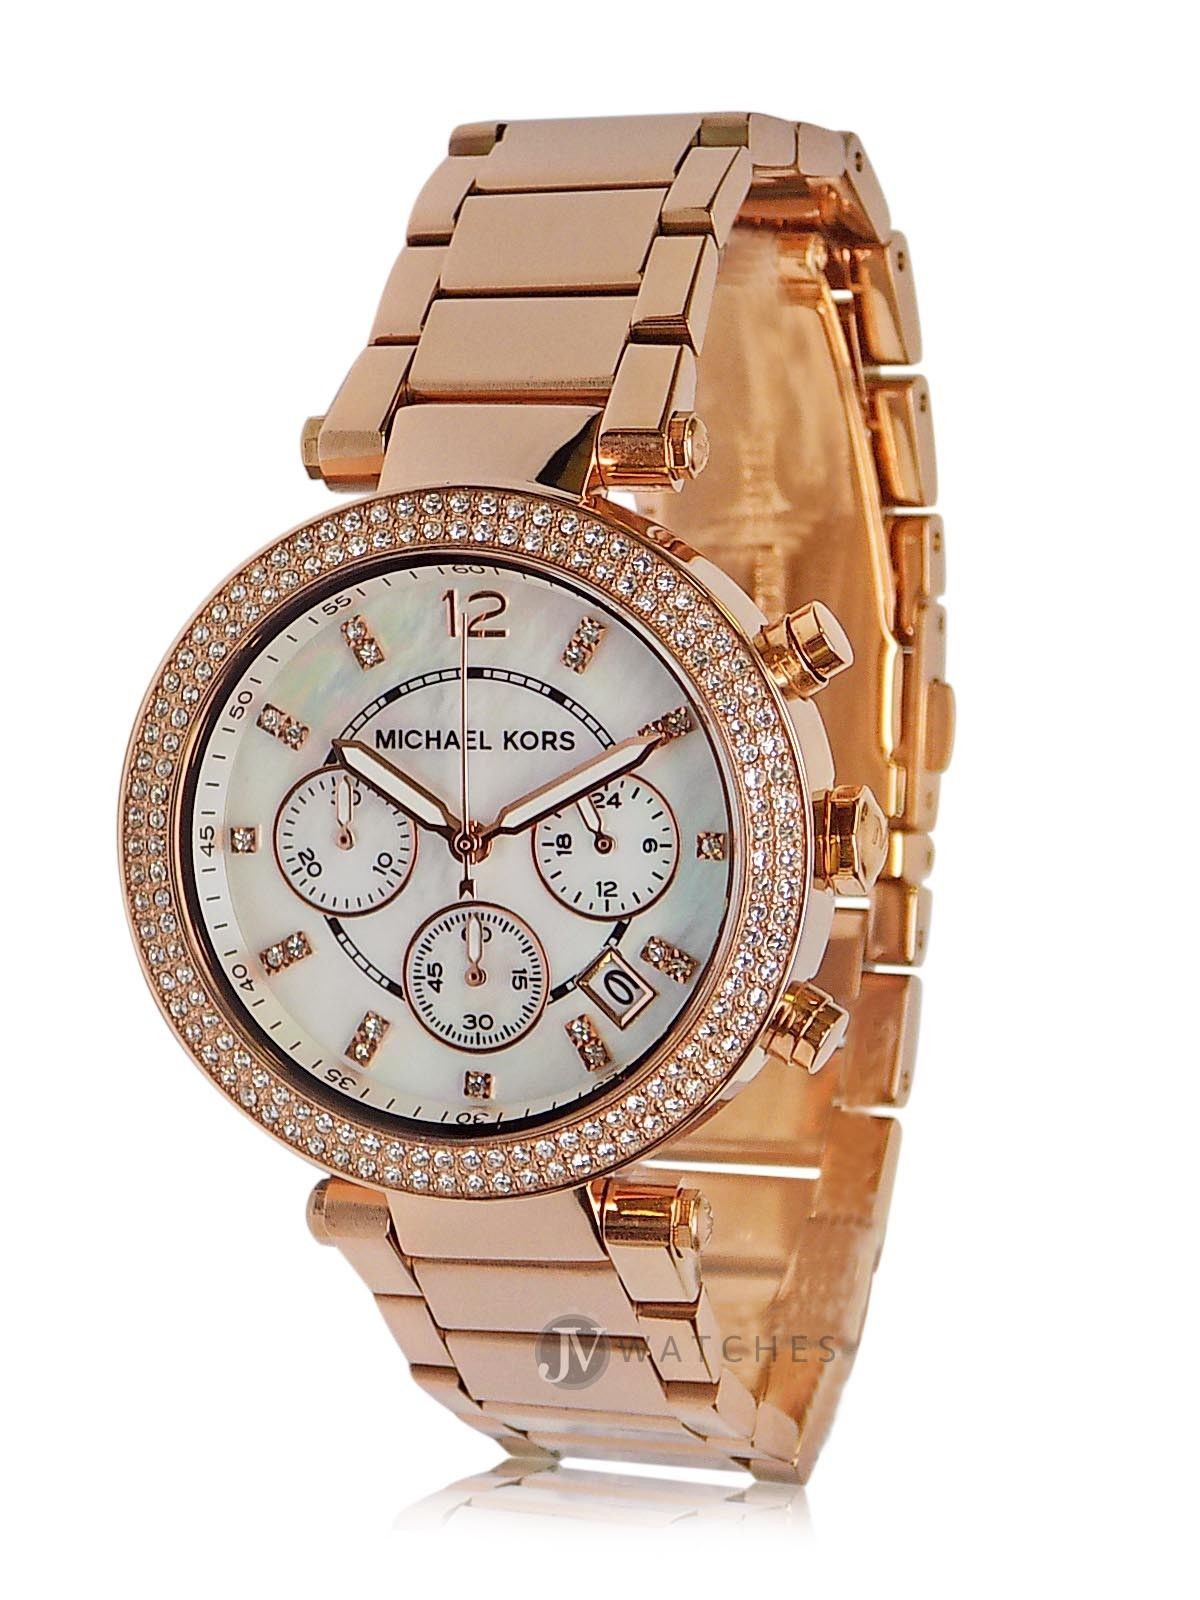 Used, NWT WOMENS MICHAEL KORS (MK5491) PARKER ROSE GOLD CHRONOGRAPH DIAL WATCH for sale  USA